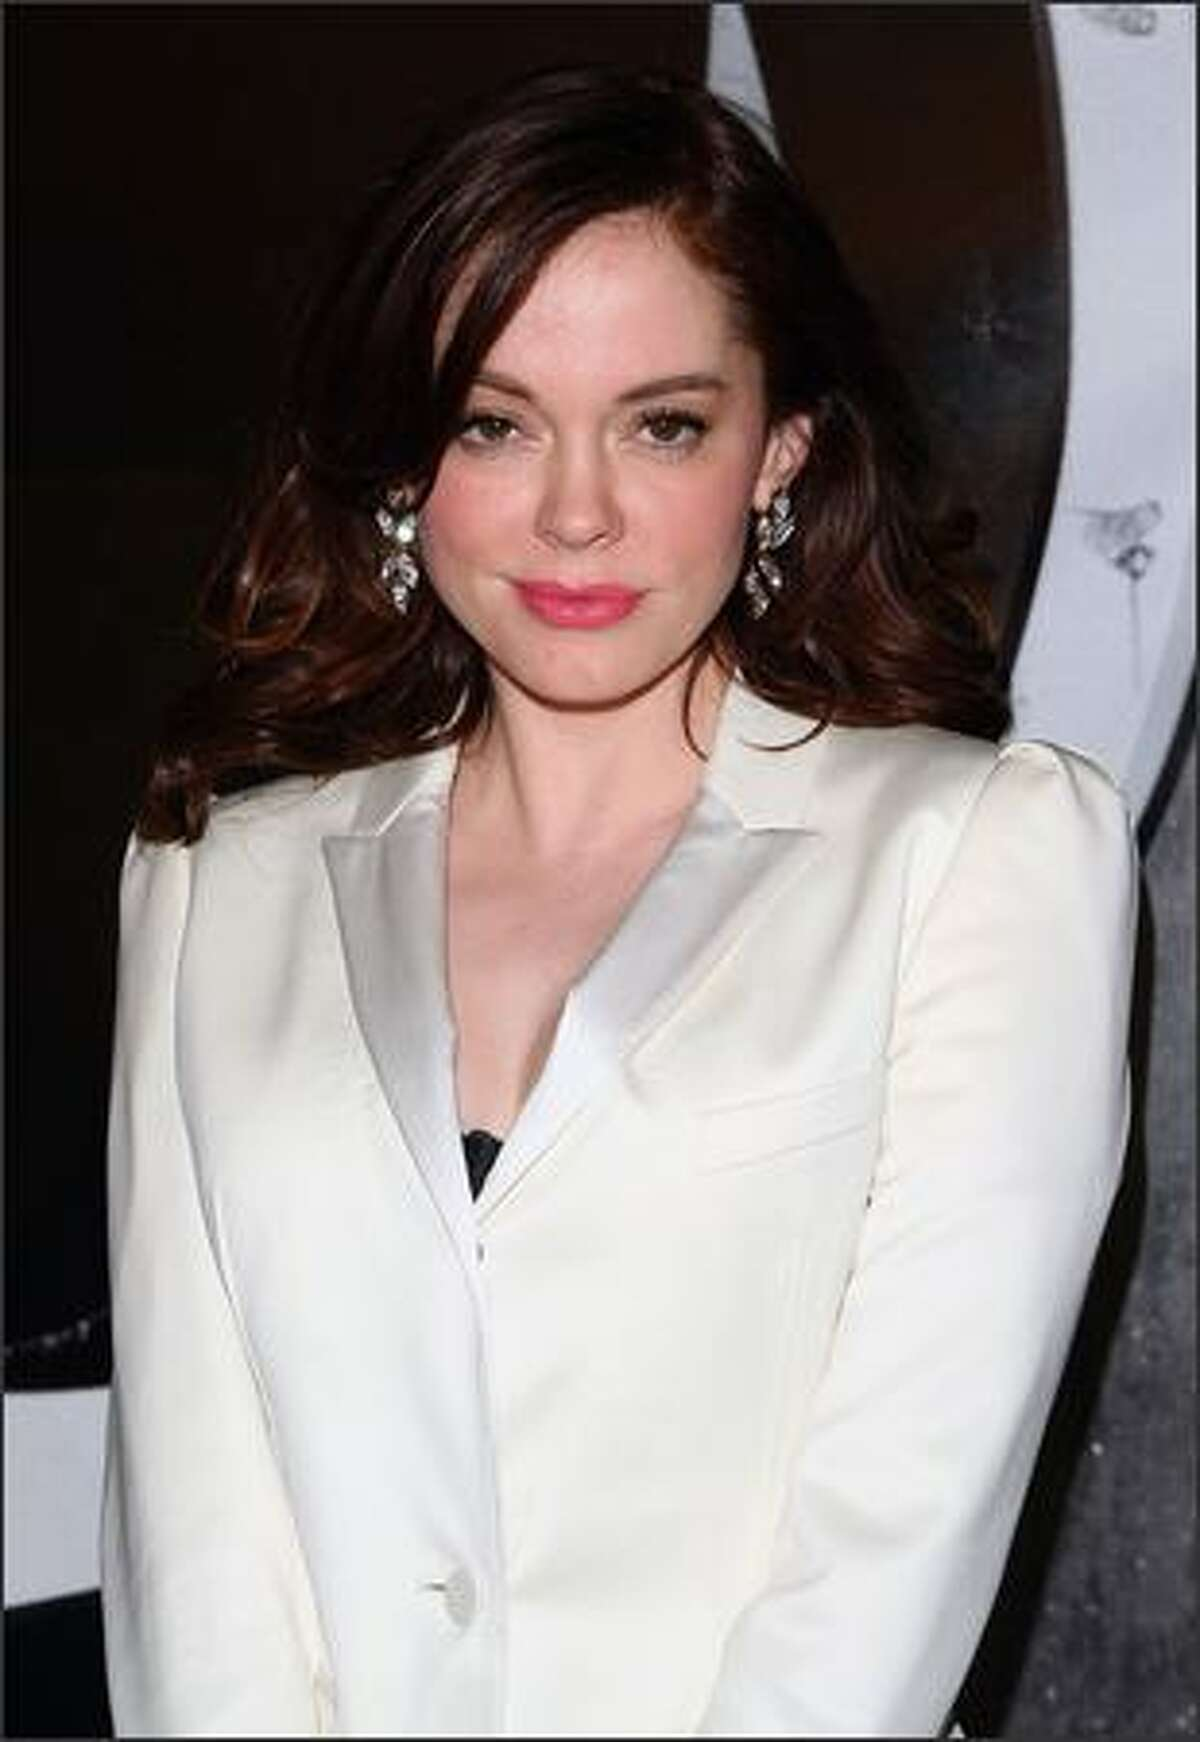 Actress Rose McGowan walks the red carpet during Burberry Day at the New York Palace Hotel on Thursday, May 28, 2009. The party celebrated fashion label Burberry's new American headquarters on Madison Avenue in New York.